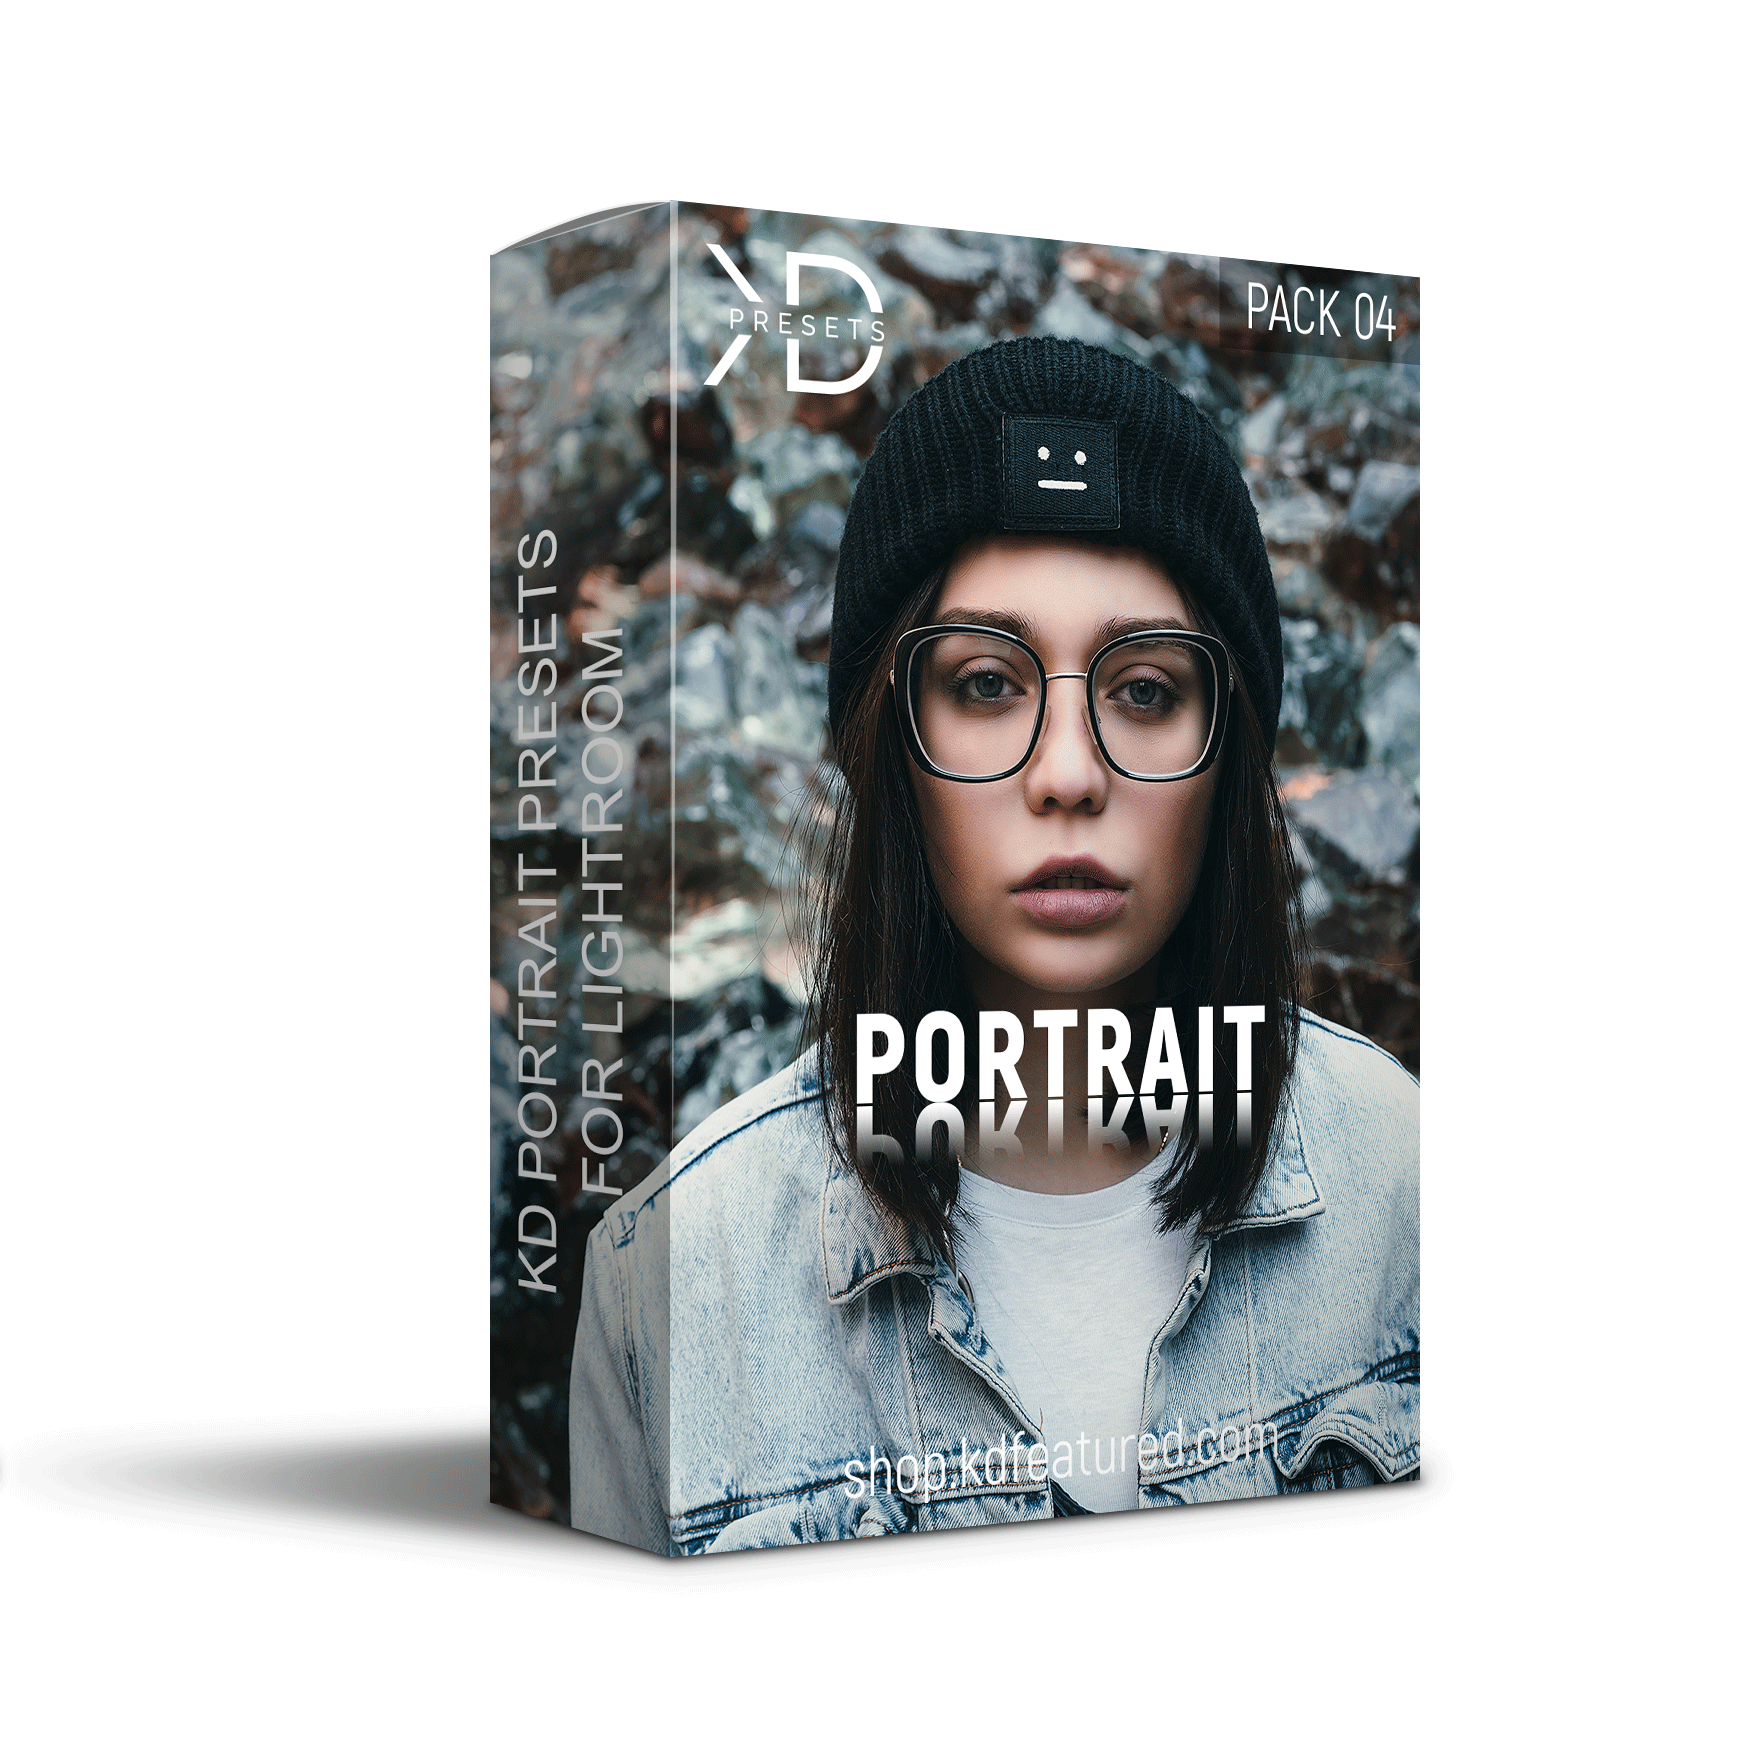 PRESETS-PACK-4